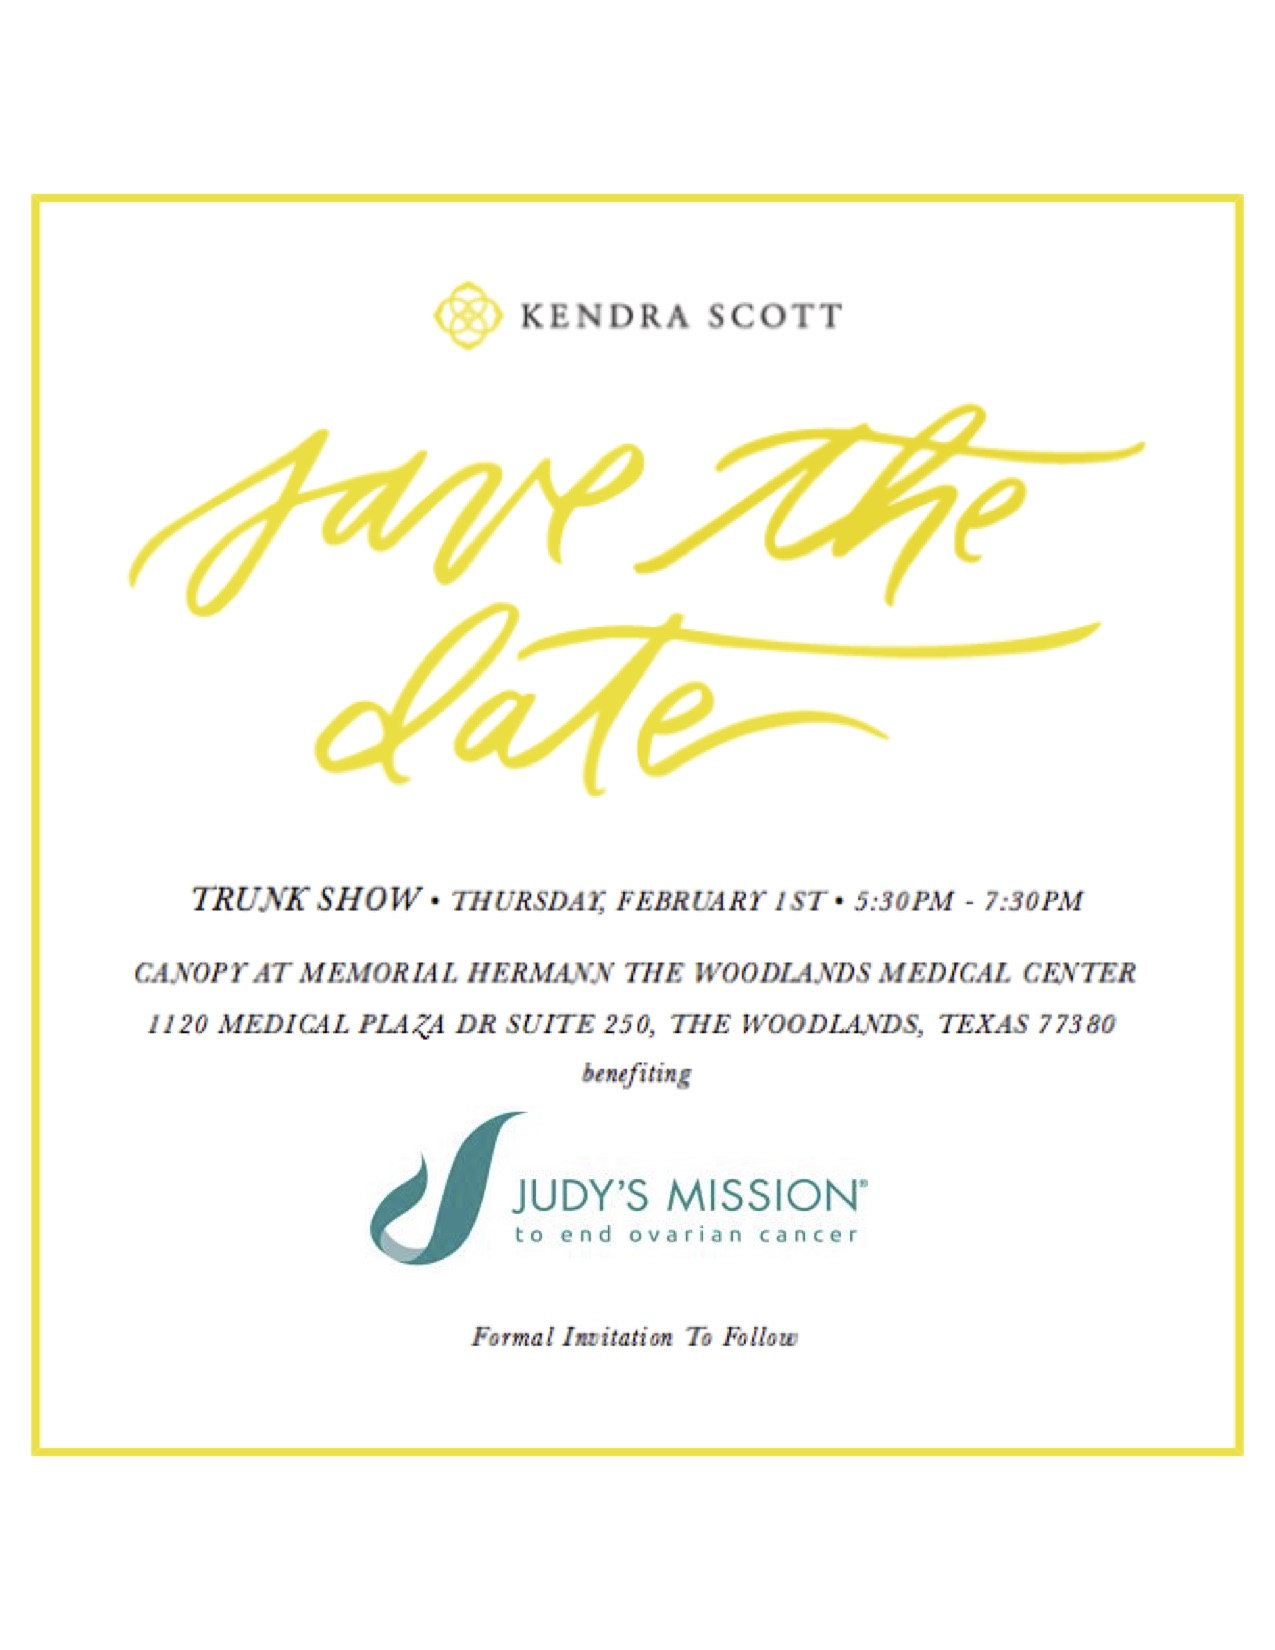 Kendra Scott STD copy